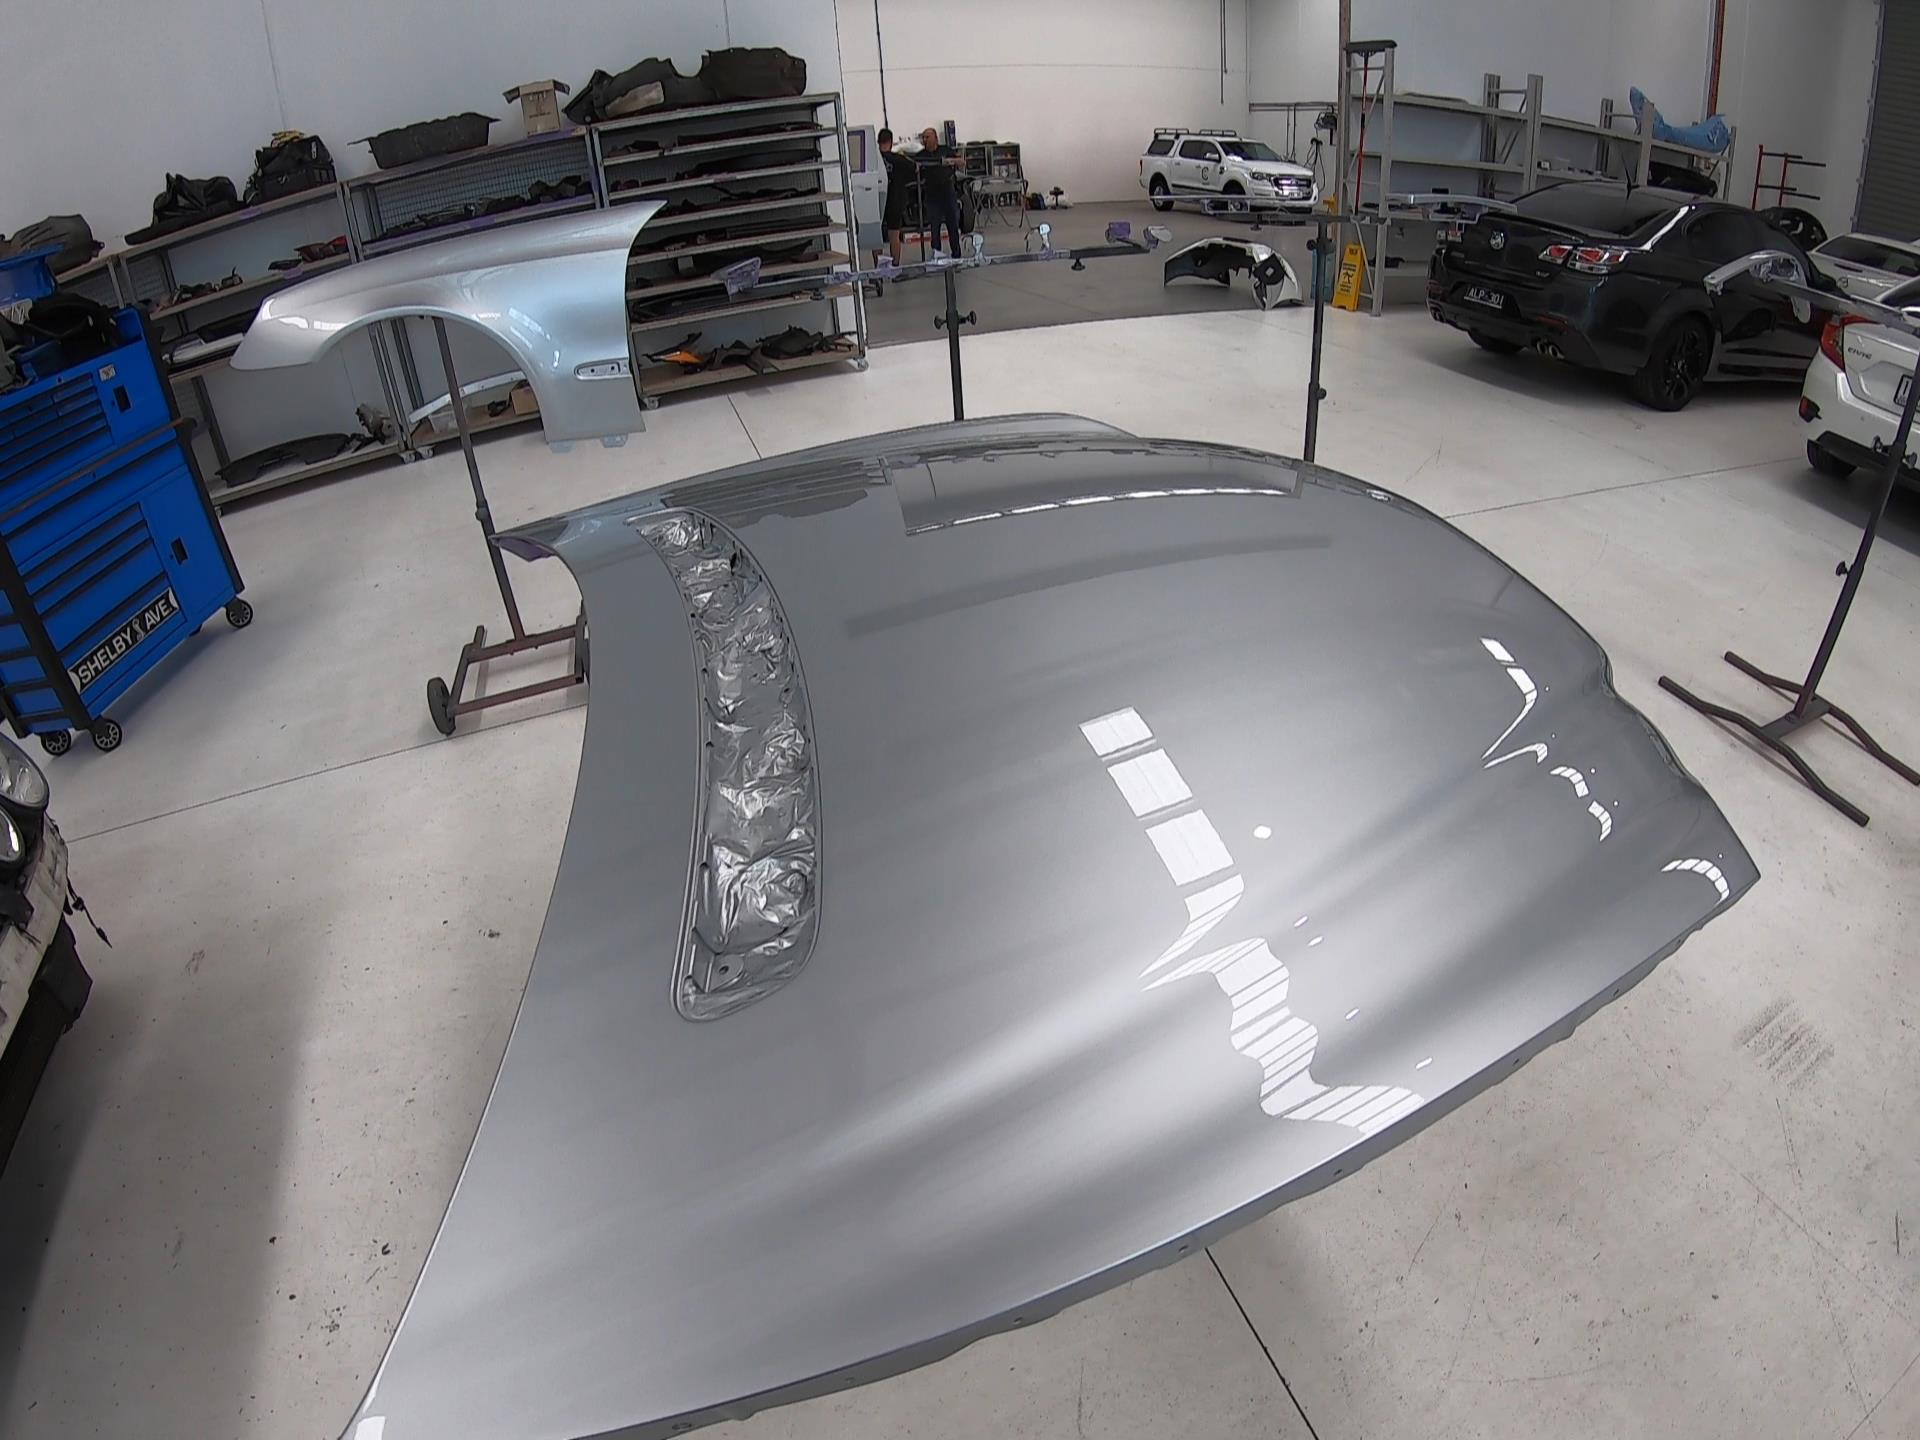 Mercedes auto body repair on this bonnet restoring it back to its pre accident condition.